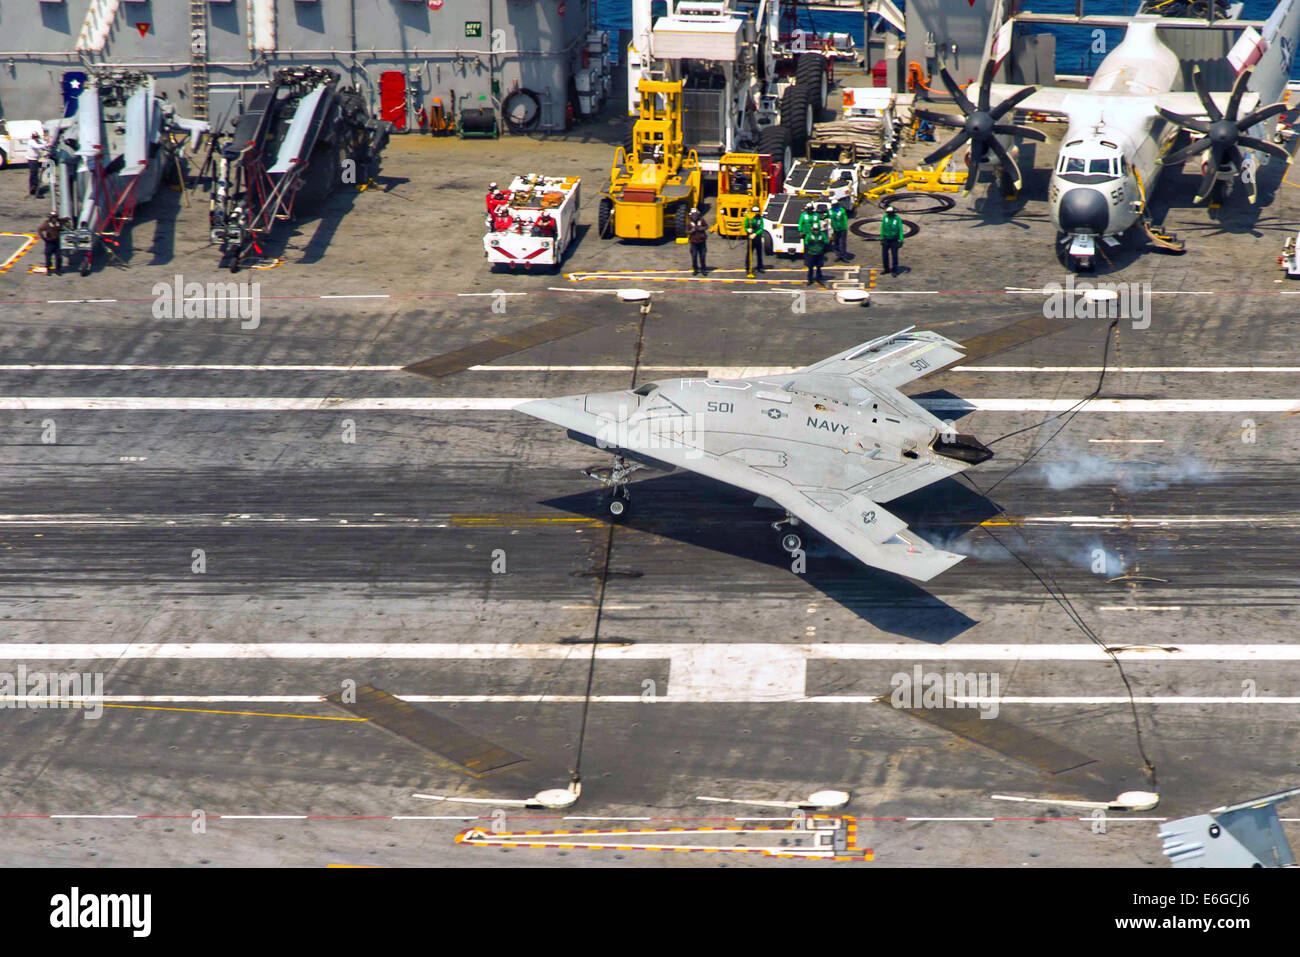 The US Navy X-47B autonomous stealth unmanned aerial vehicle performs an arrested landing on the flight deck of - Stock Image